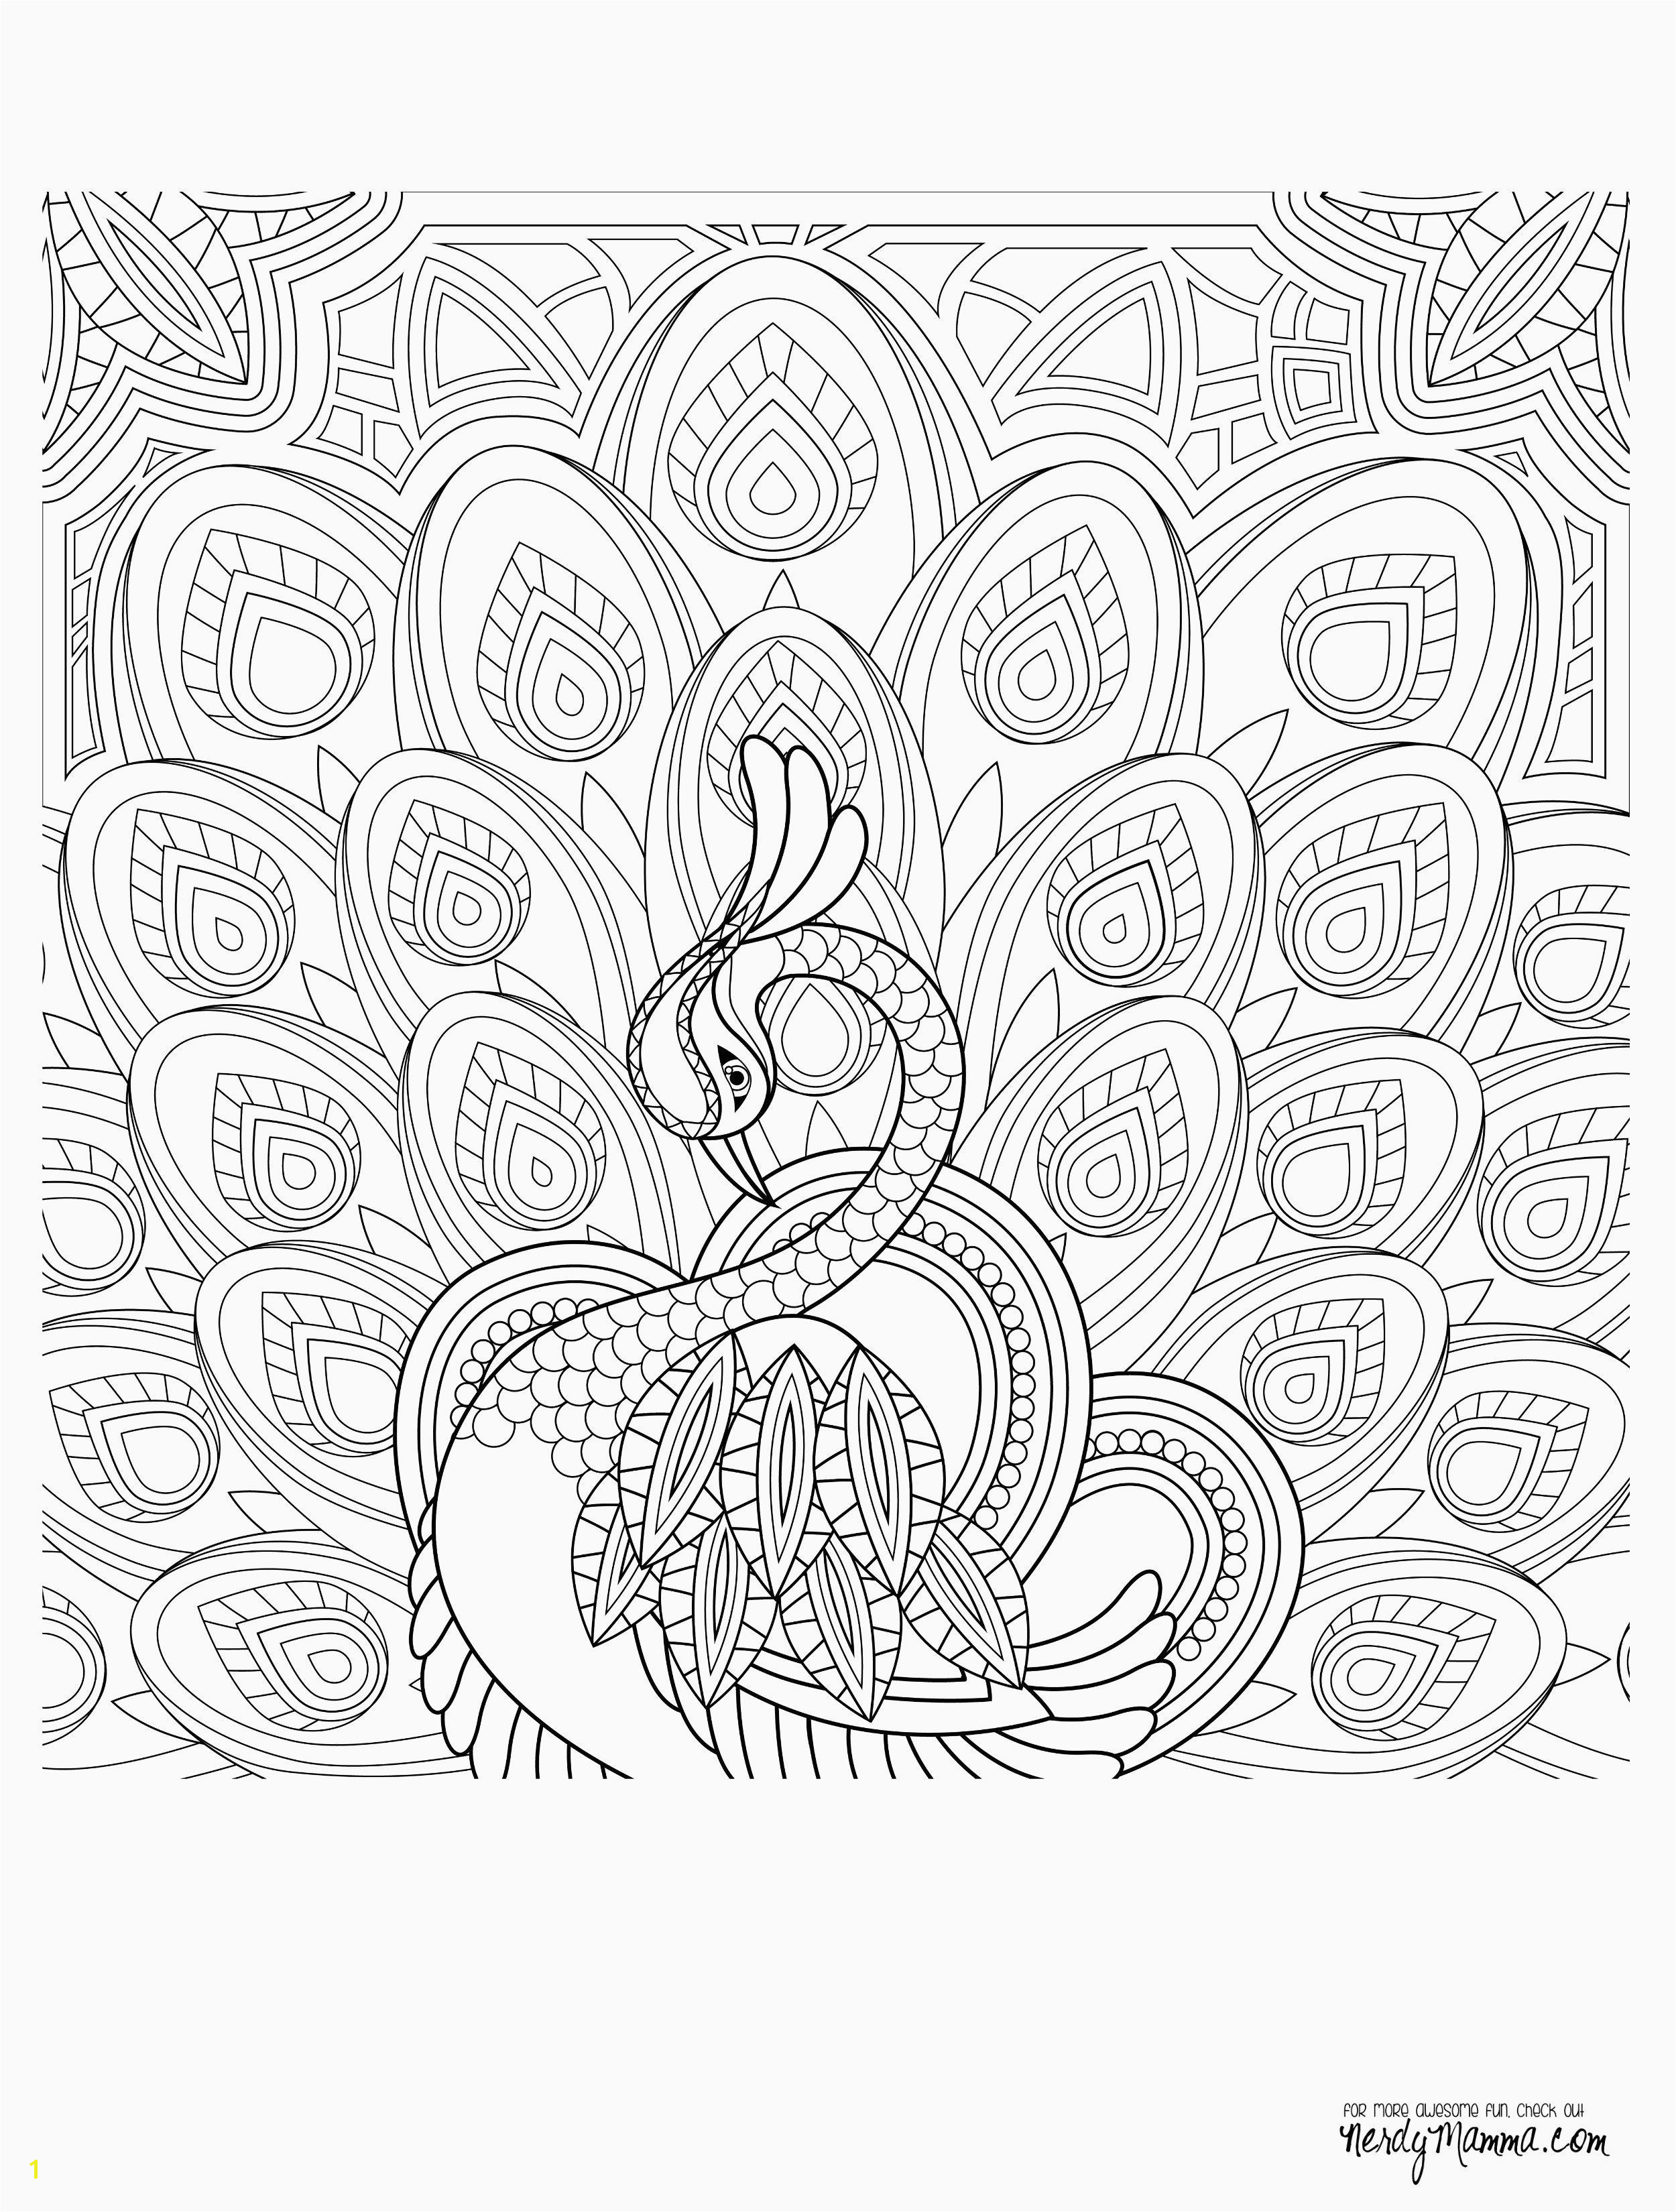 Free Coloring Pages for Adults Printable Free Printable Coloring Pages for Adults Best Awesome Coloring